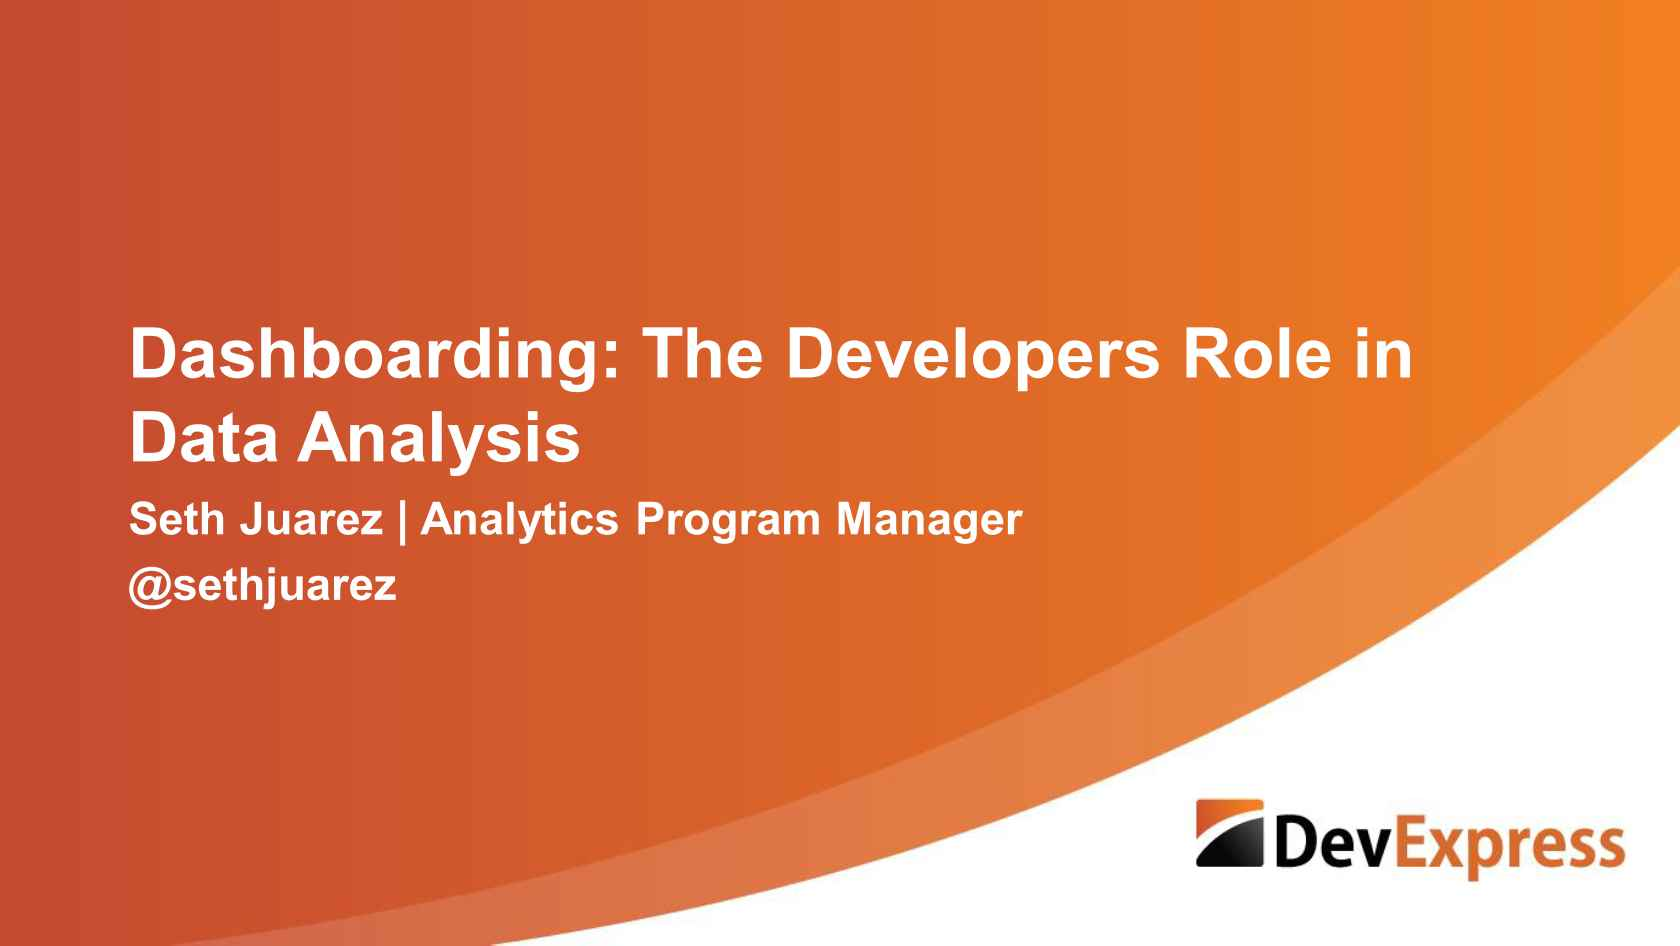 Dashboarding: The Developers' Role in Data Analysis